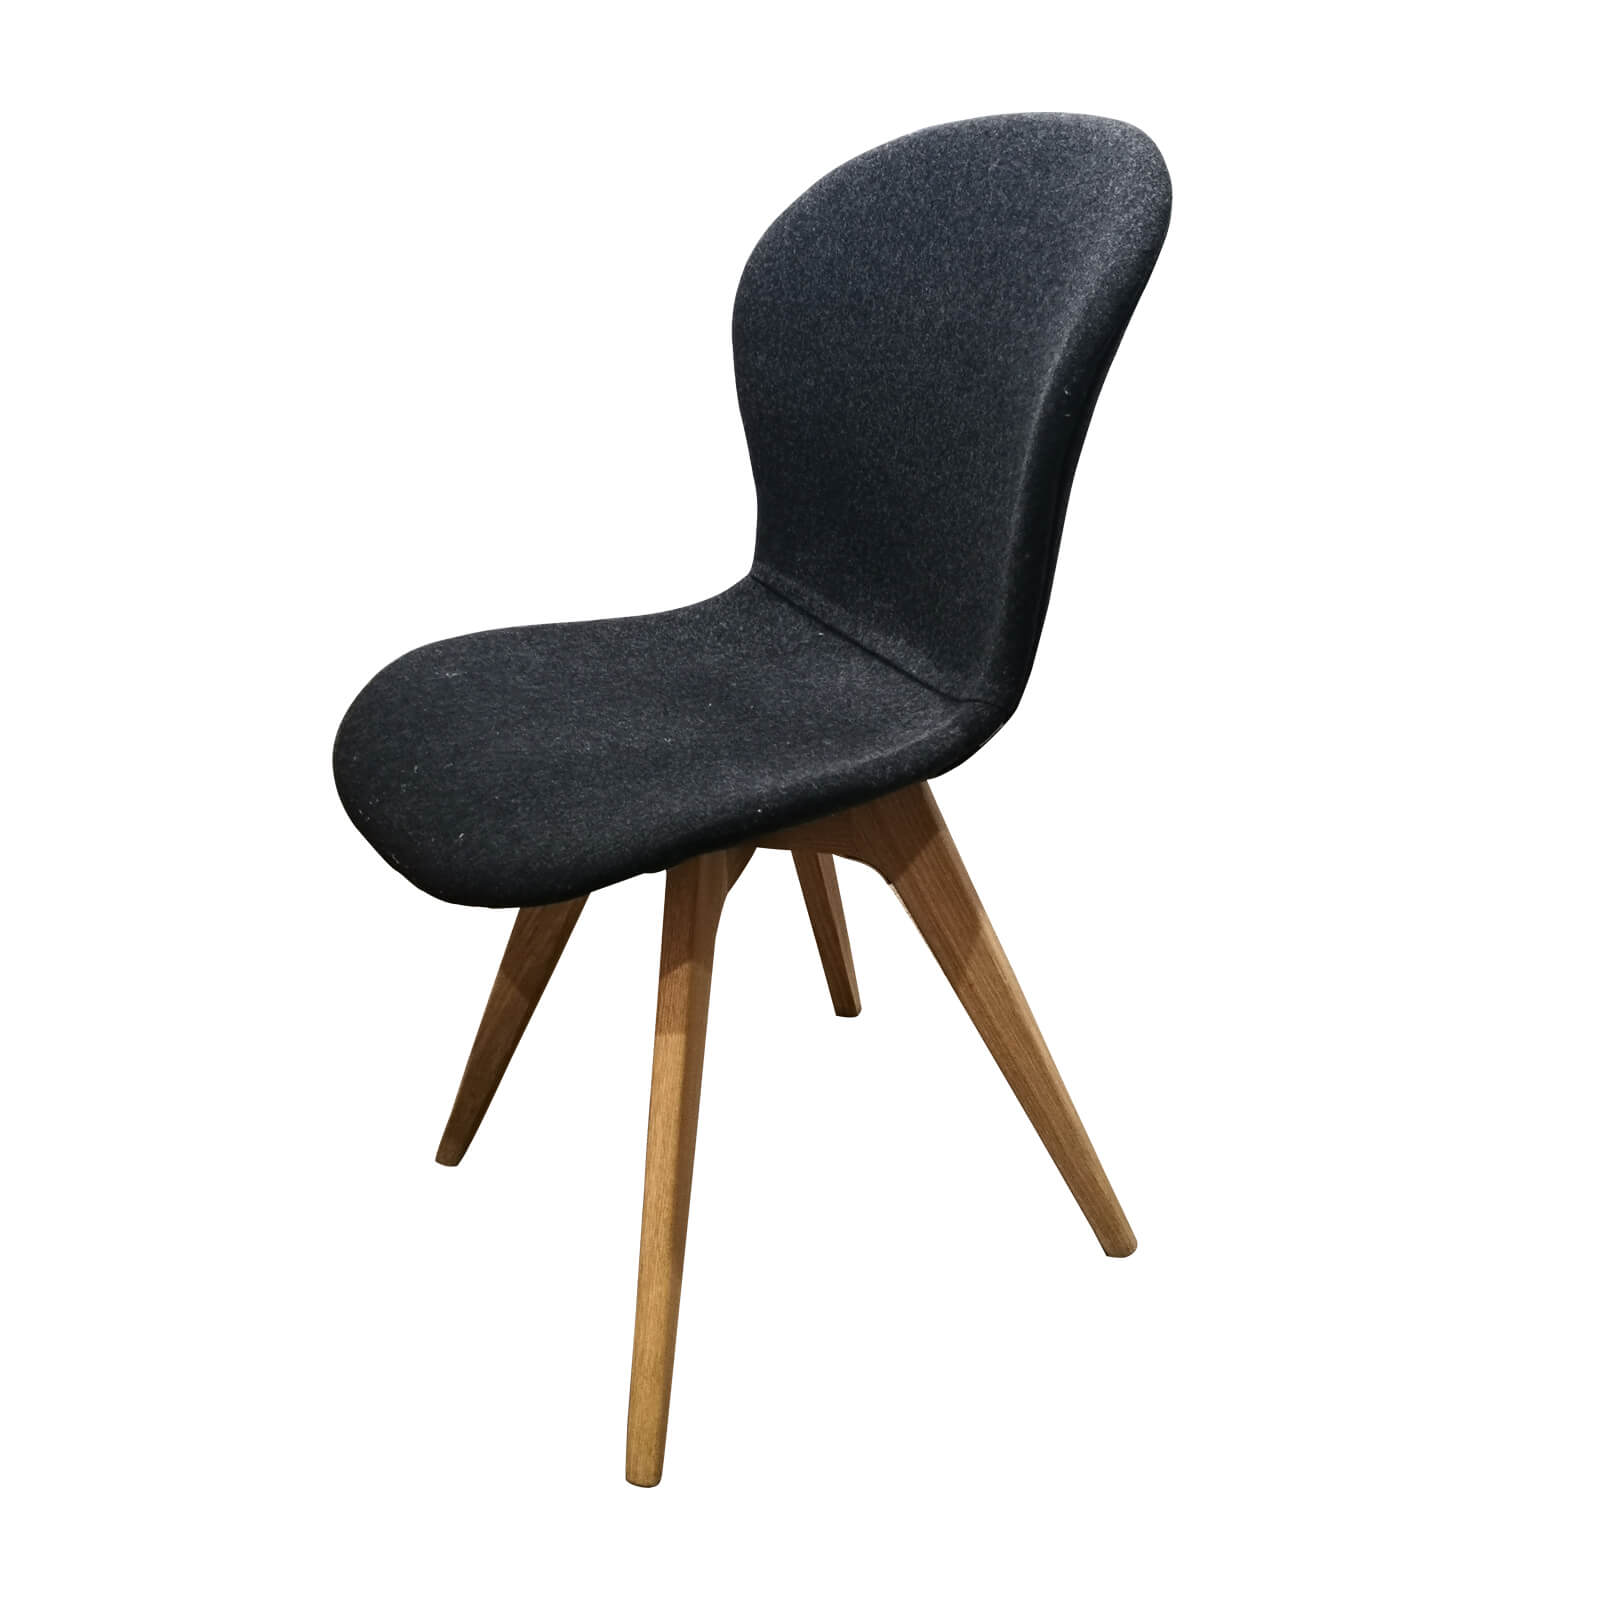 Two Design Lovers Bo Concept Adelaide Chair